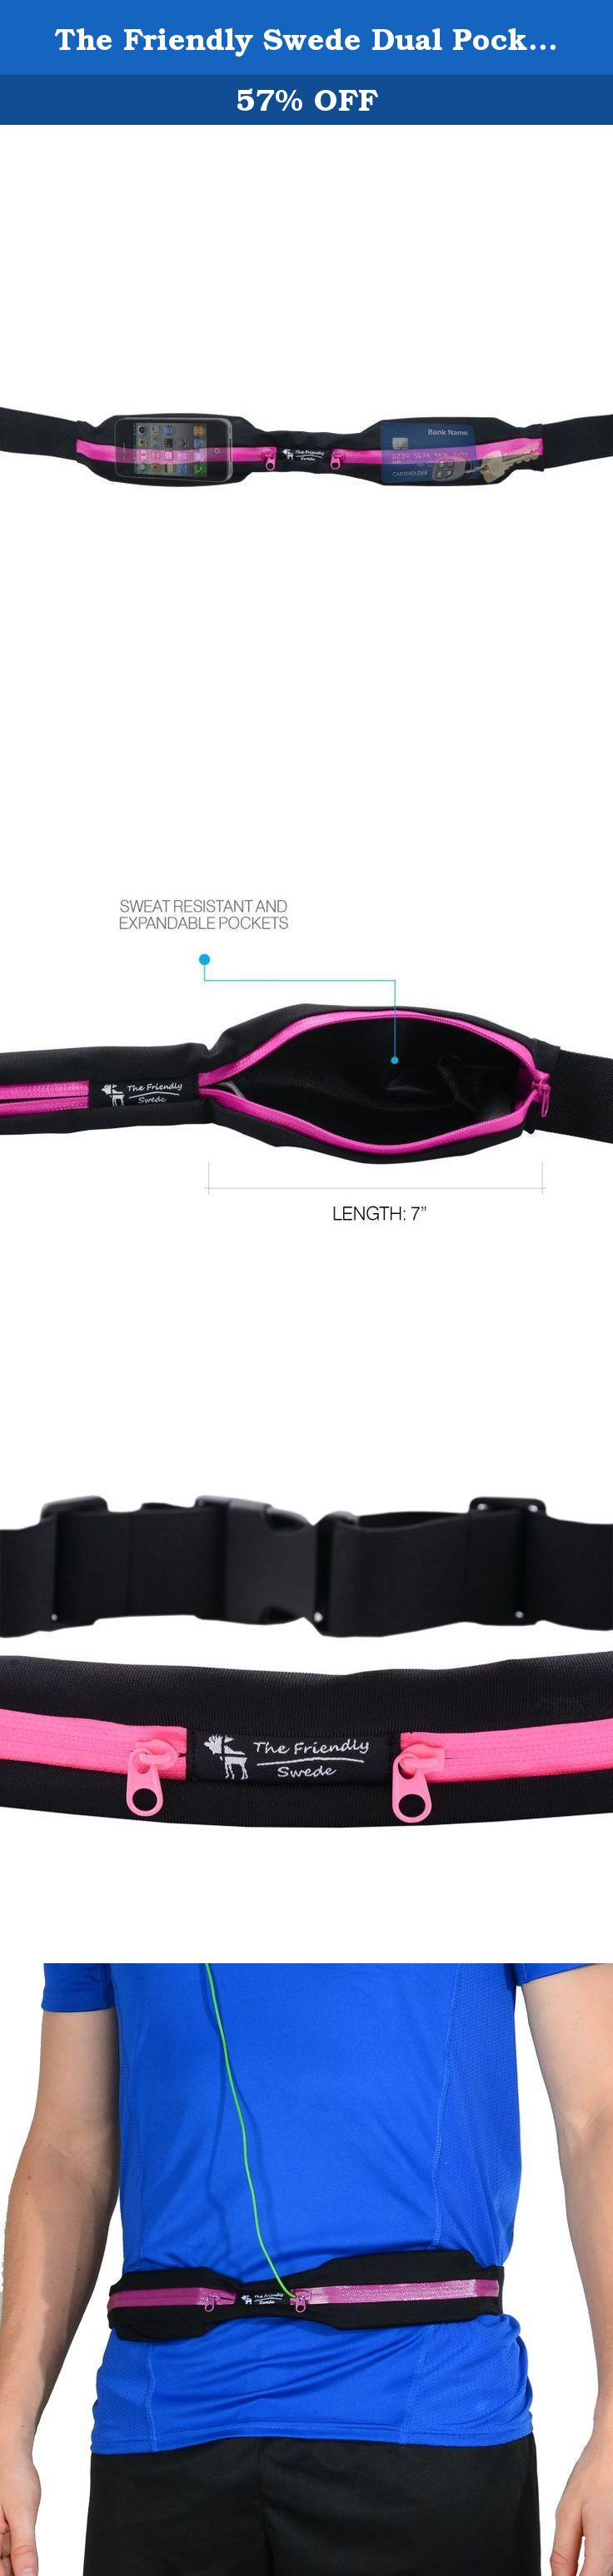 The Friendly Swede Dual Pocket Running Belts (2 Pack), Purple, Pink. The Friendly Swede® Running Belts (2 Pack) The perfect way to carry your essentials when out and about - expandable, water resistant pockets in a lightweight belt allow you to easily carry your phone, keys, cards, money and energy bars. Dual pockets allow you to separate your phone and keys to avoid scratching. Belts are great for runners, cyclists and hikers, but can also be used for traveling and sightseeing. Strong...